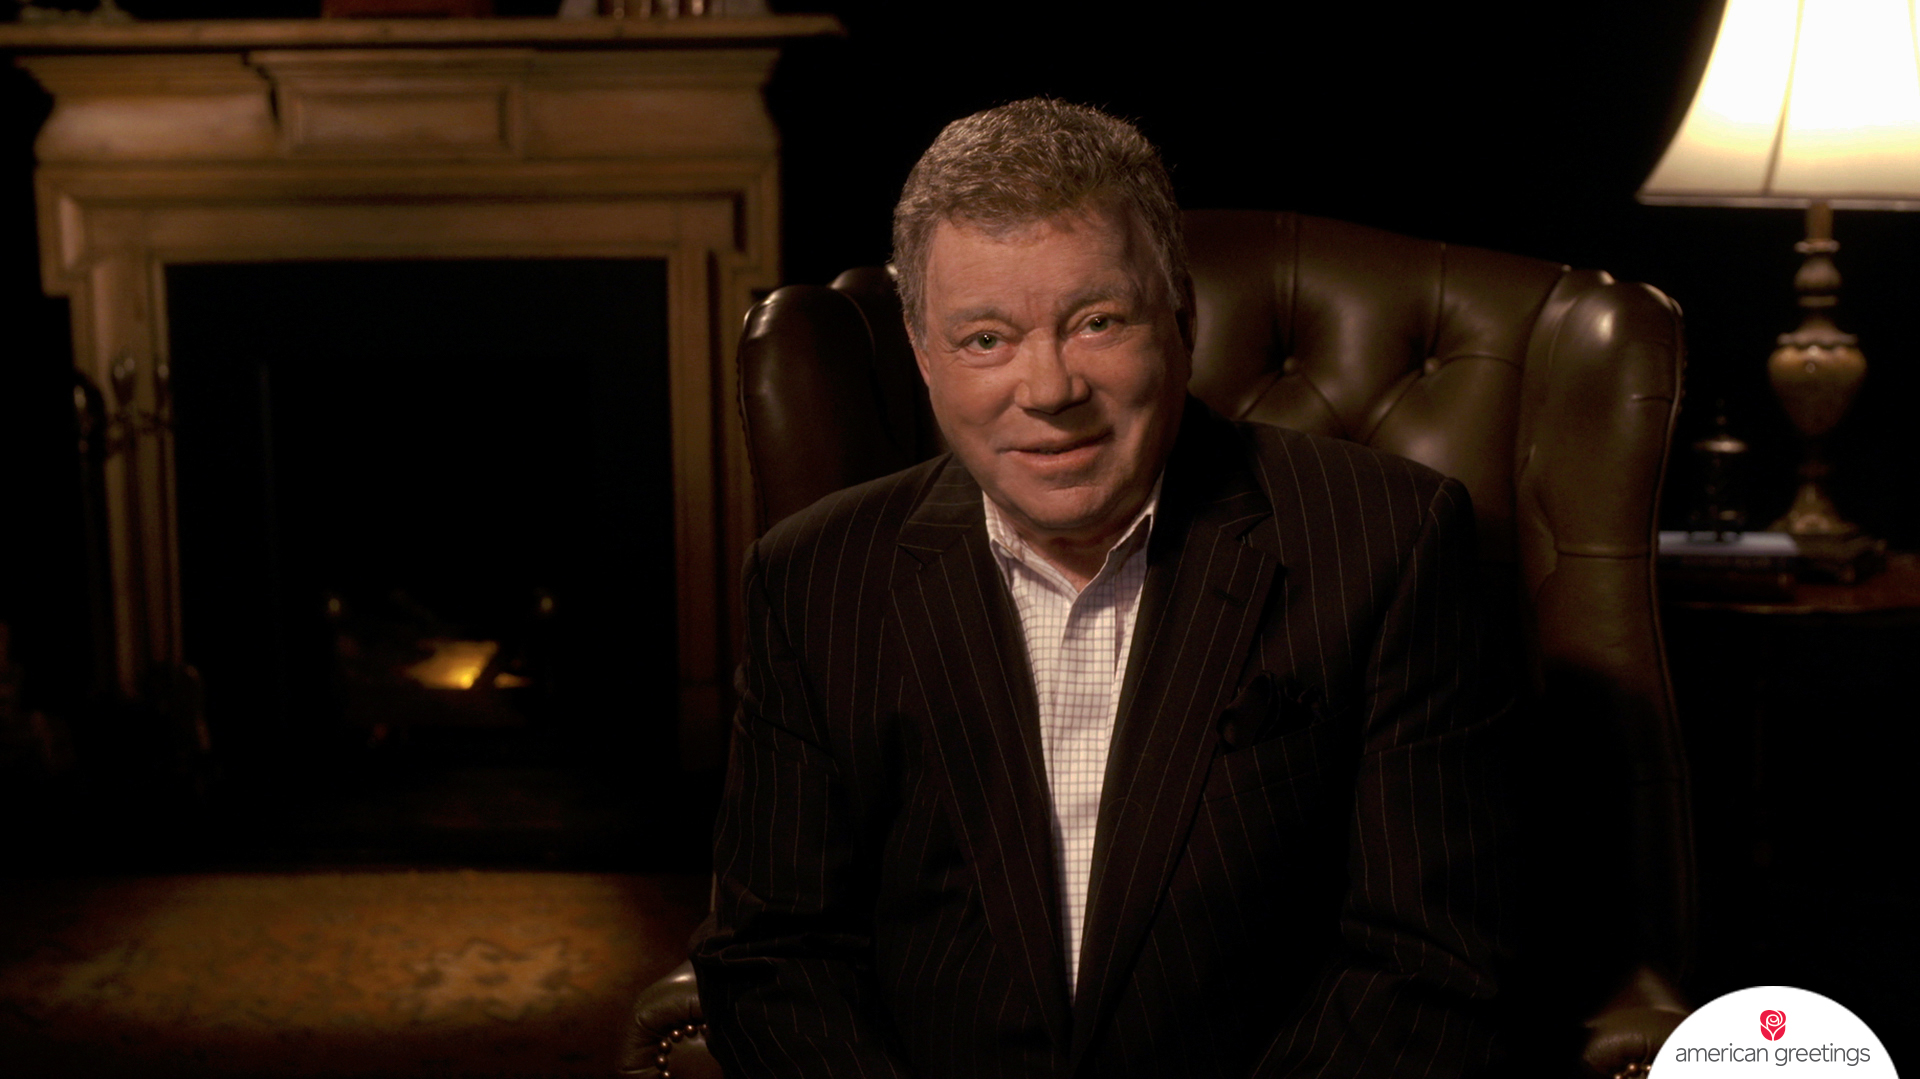 When you can't find the words to express your appreciation, let William Shatner do the shouting.